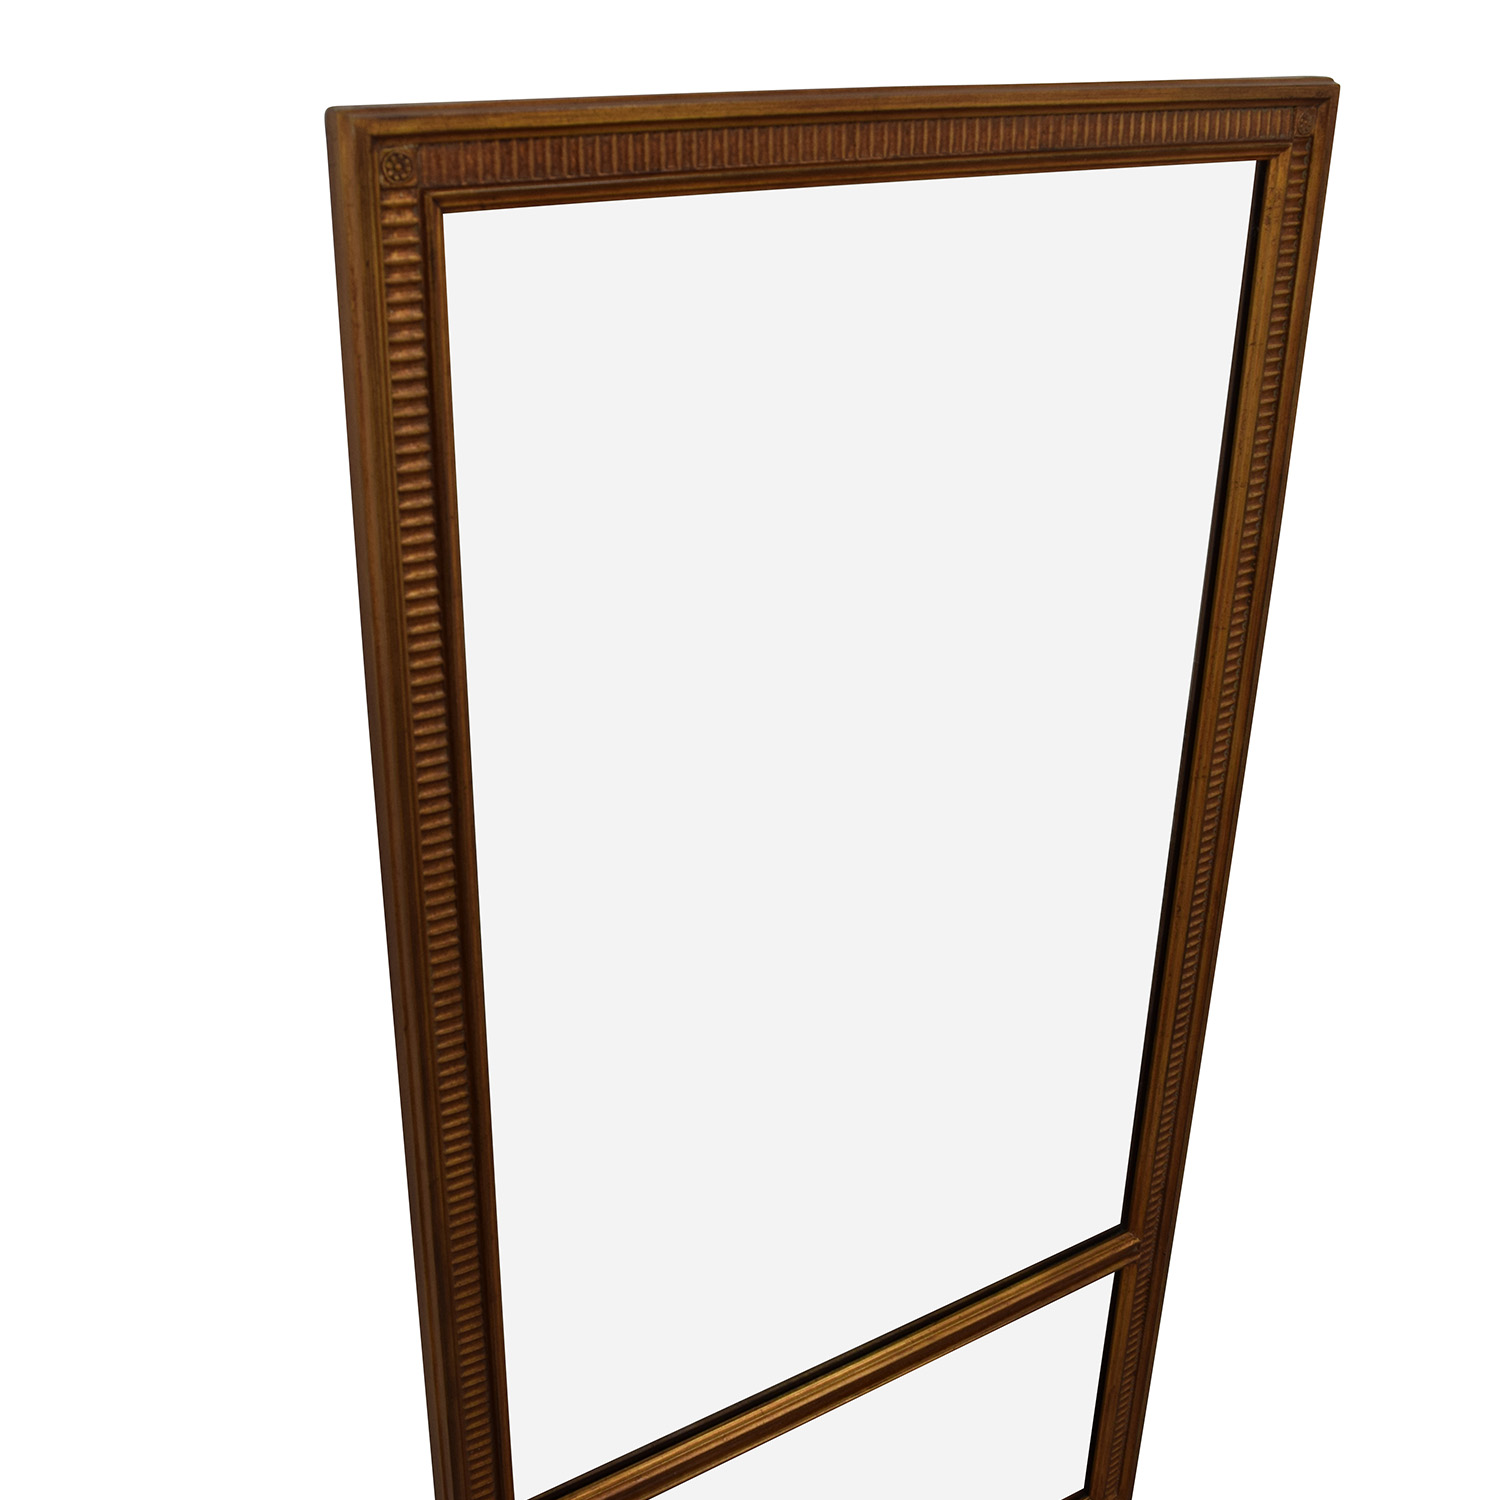 76 off distressed copper oversized mirror decor for Oversized mirror